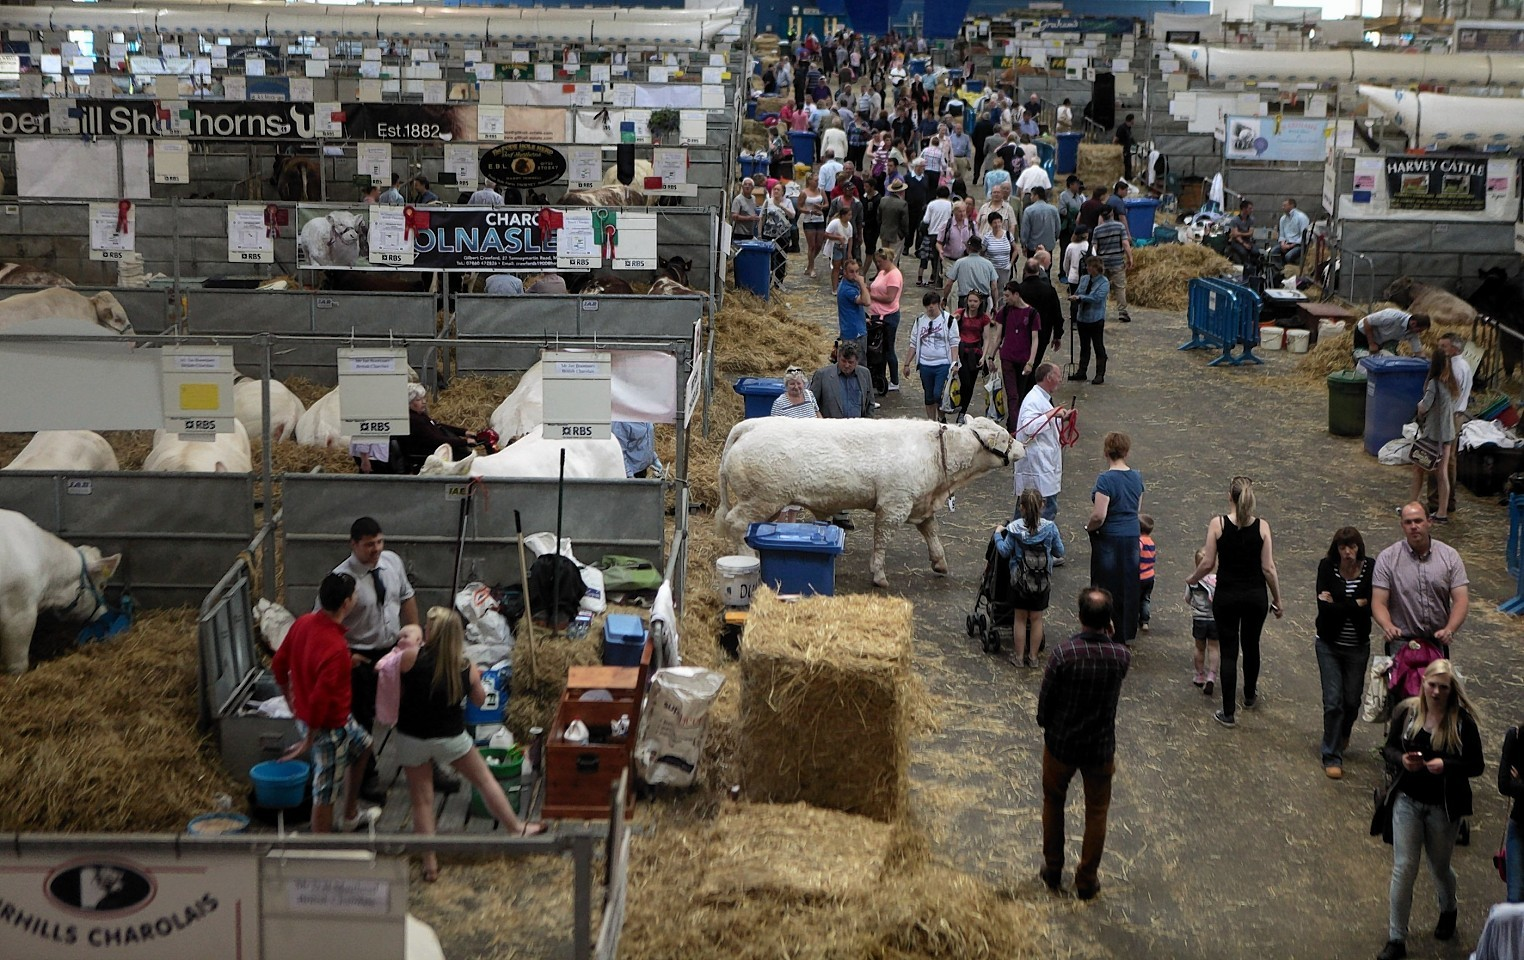 This year's Royal Highland Show